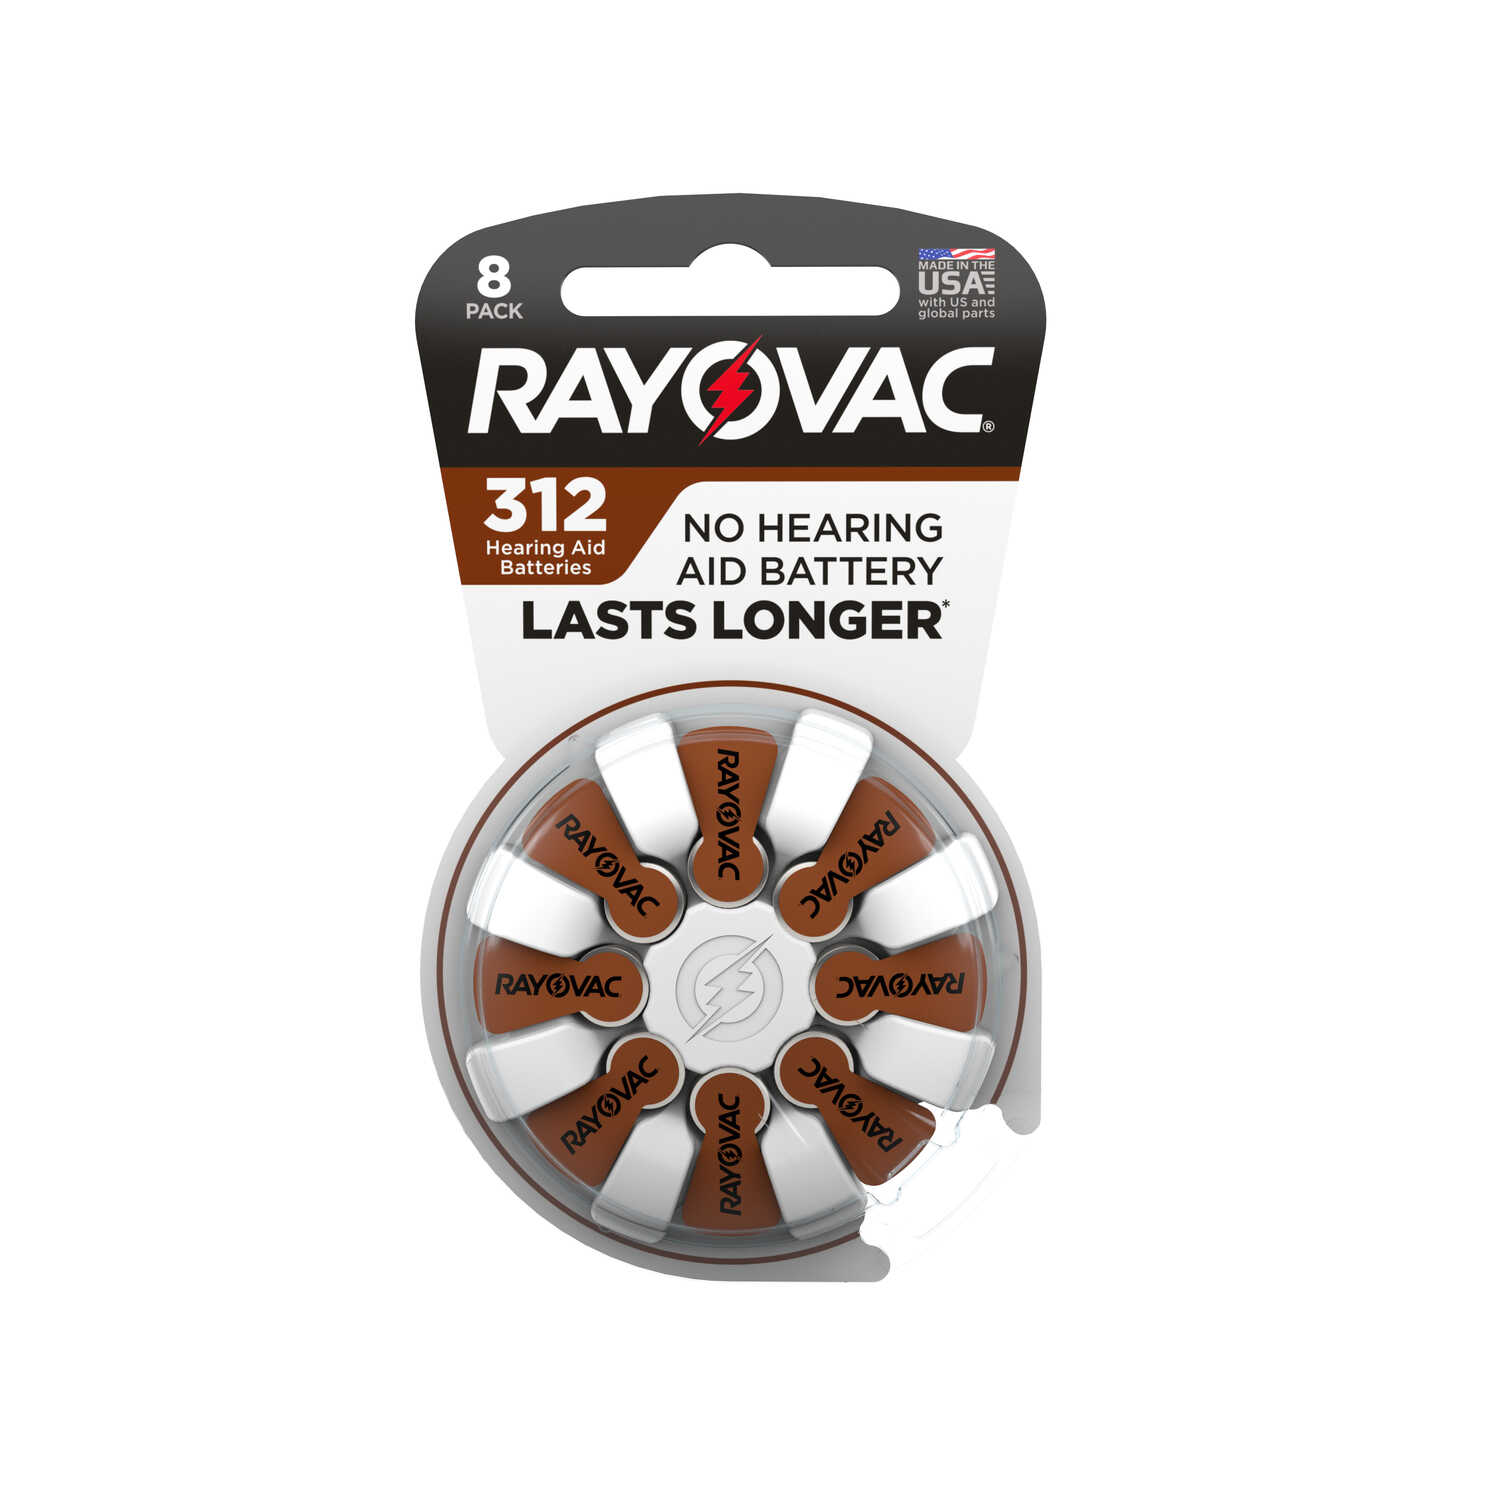 Rayovac  Zinc-Air  1.45 volt Hearing Aid Battery  8 pk 312